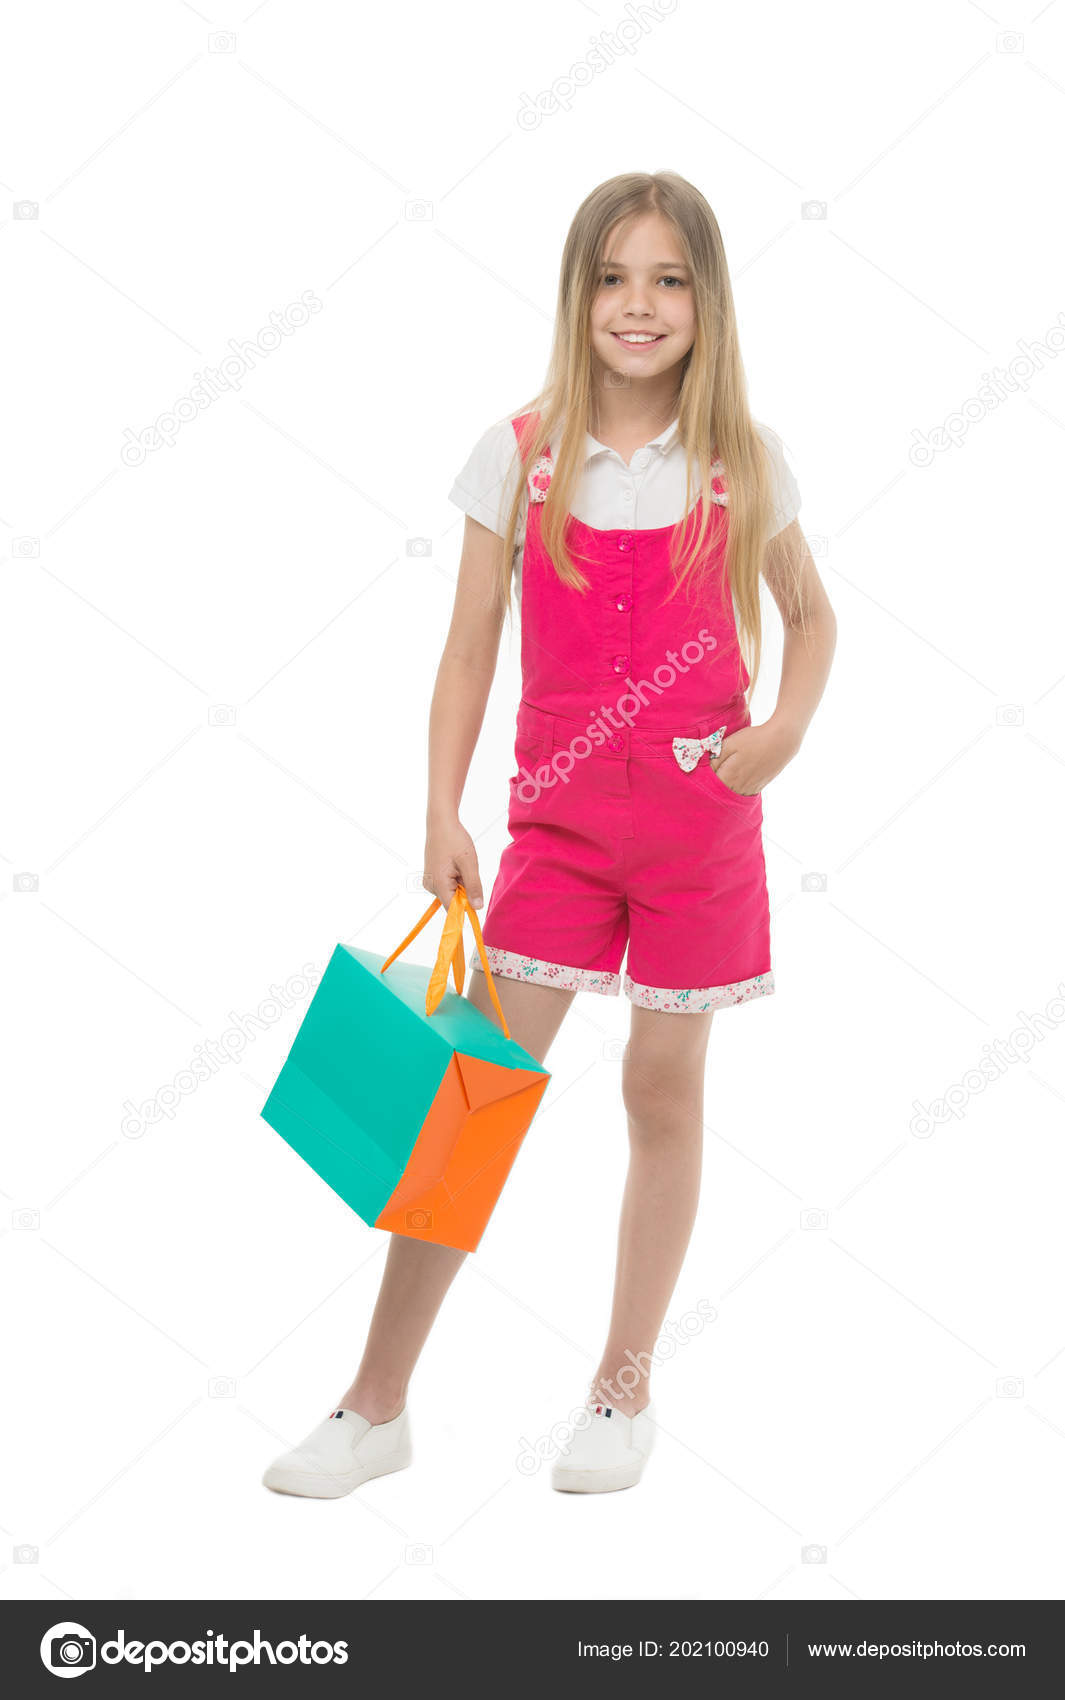 6898e8804d9 Kids designer clothing summer sale. Girl cute teenager carries shopping  bag. Kid bought clothing